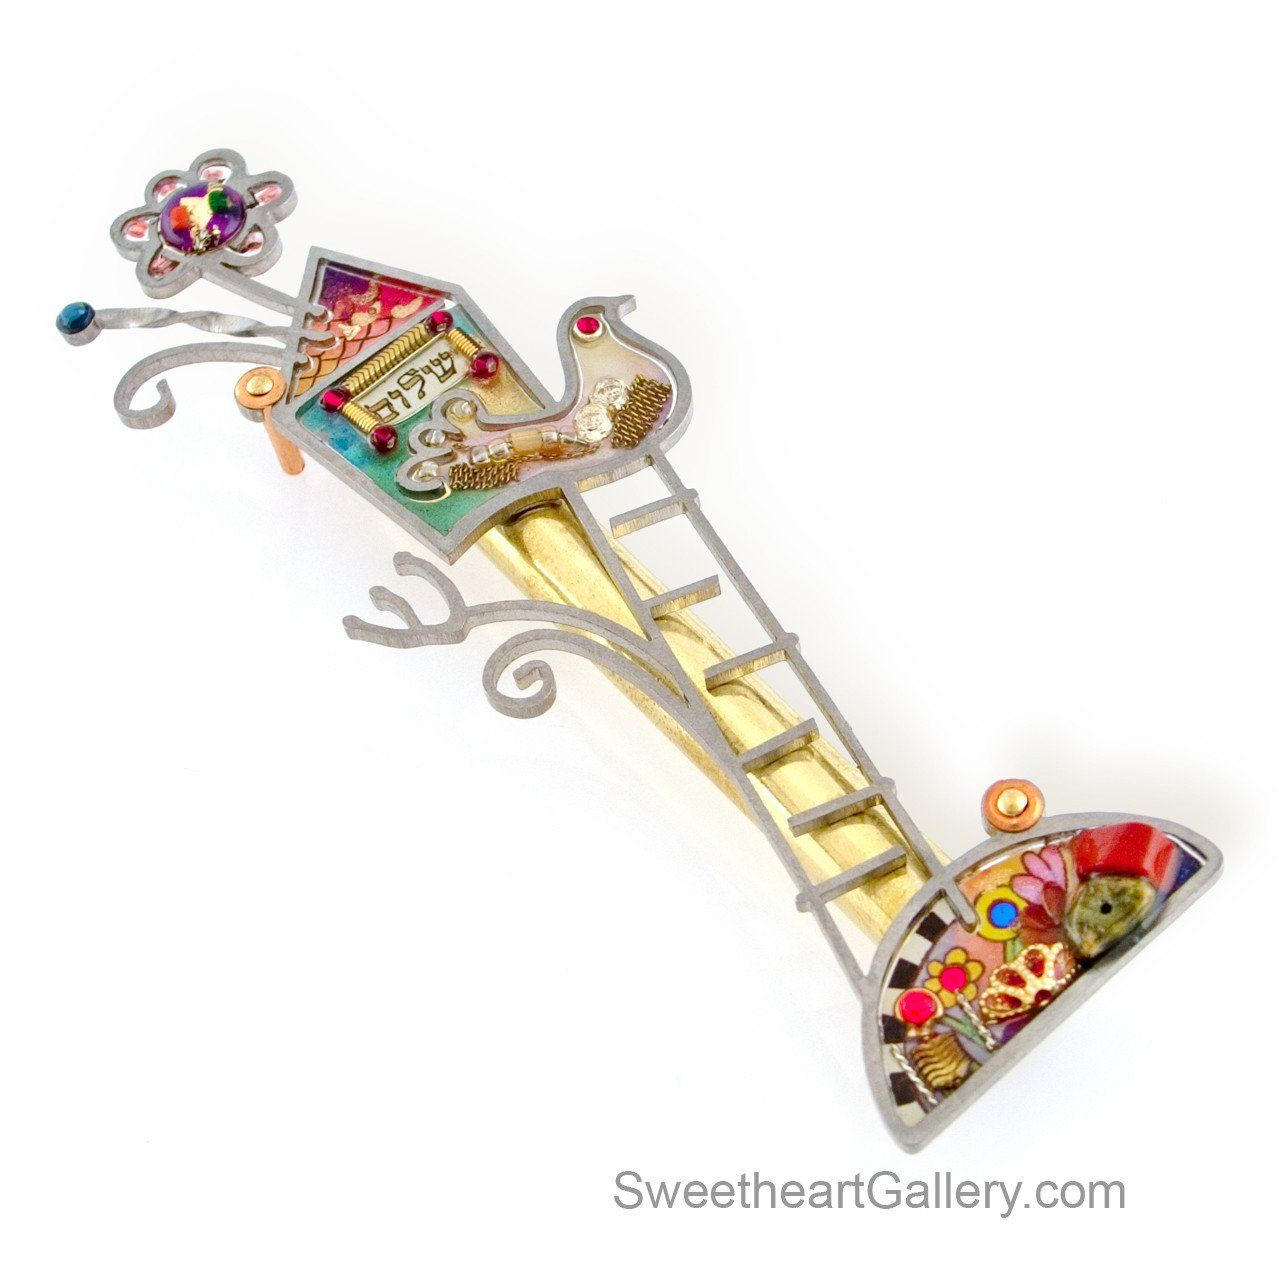 Peace Mezuzah 1450257 by Seeka Jewish wedding traditions